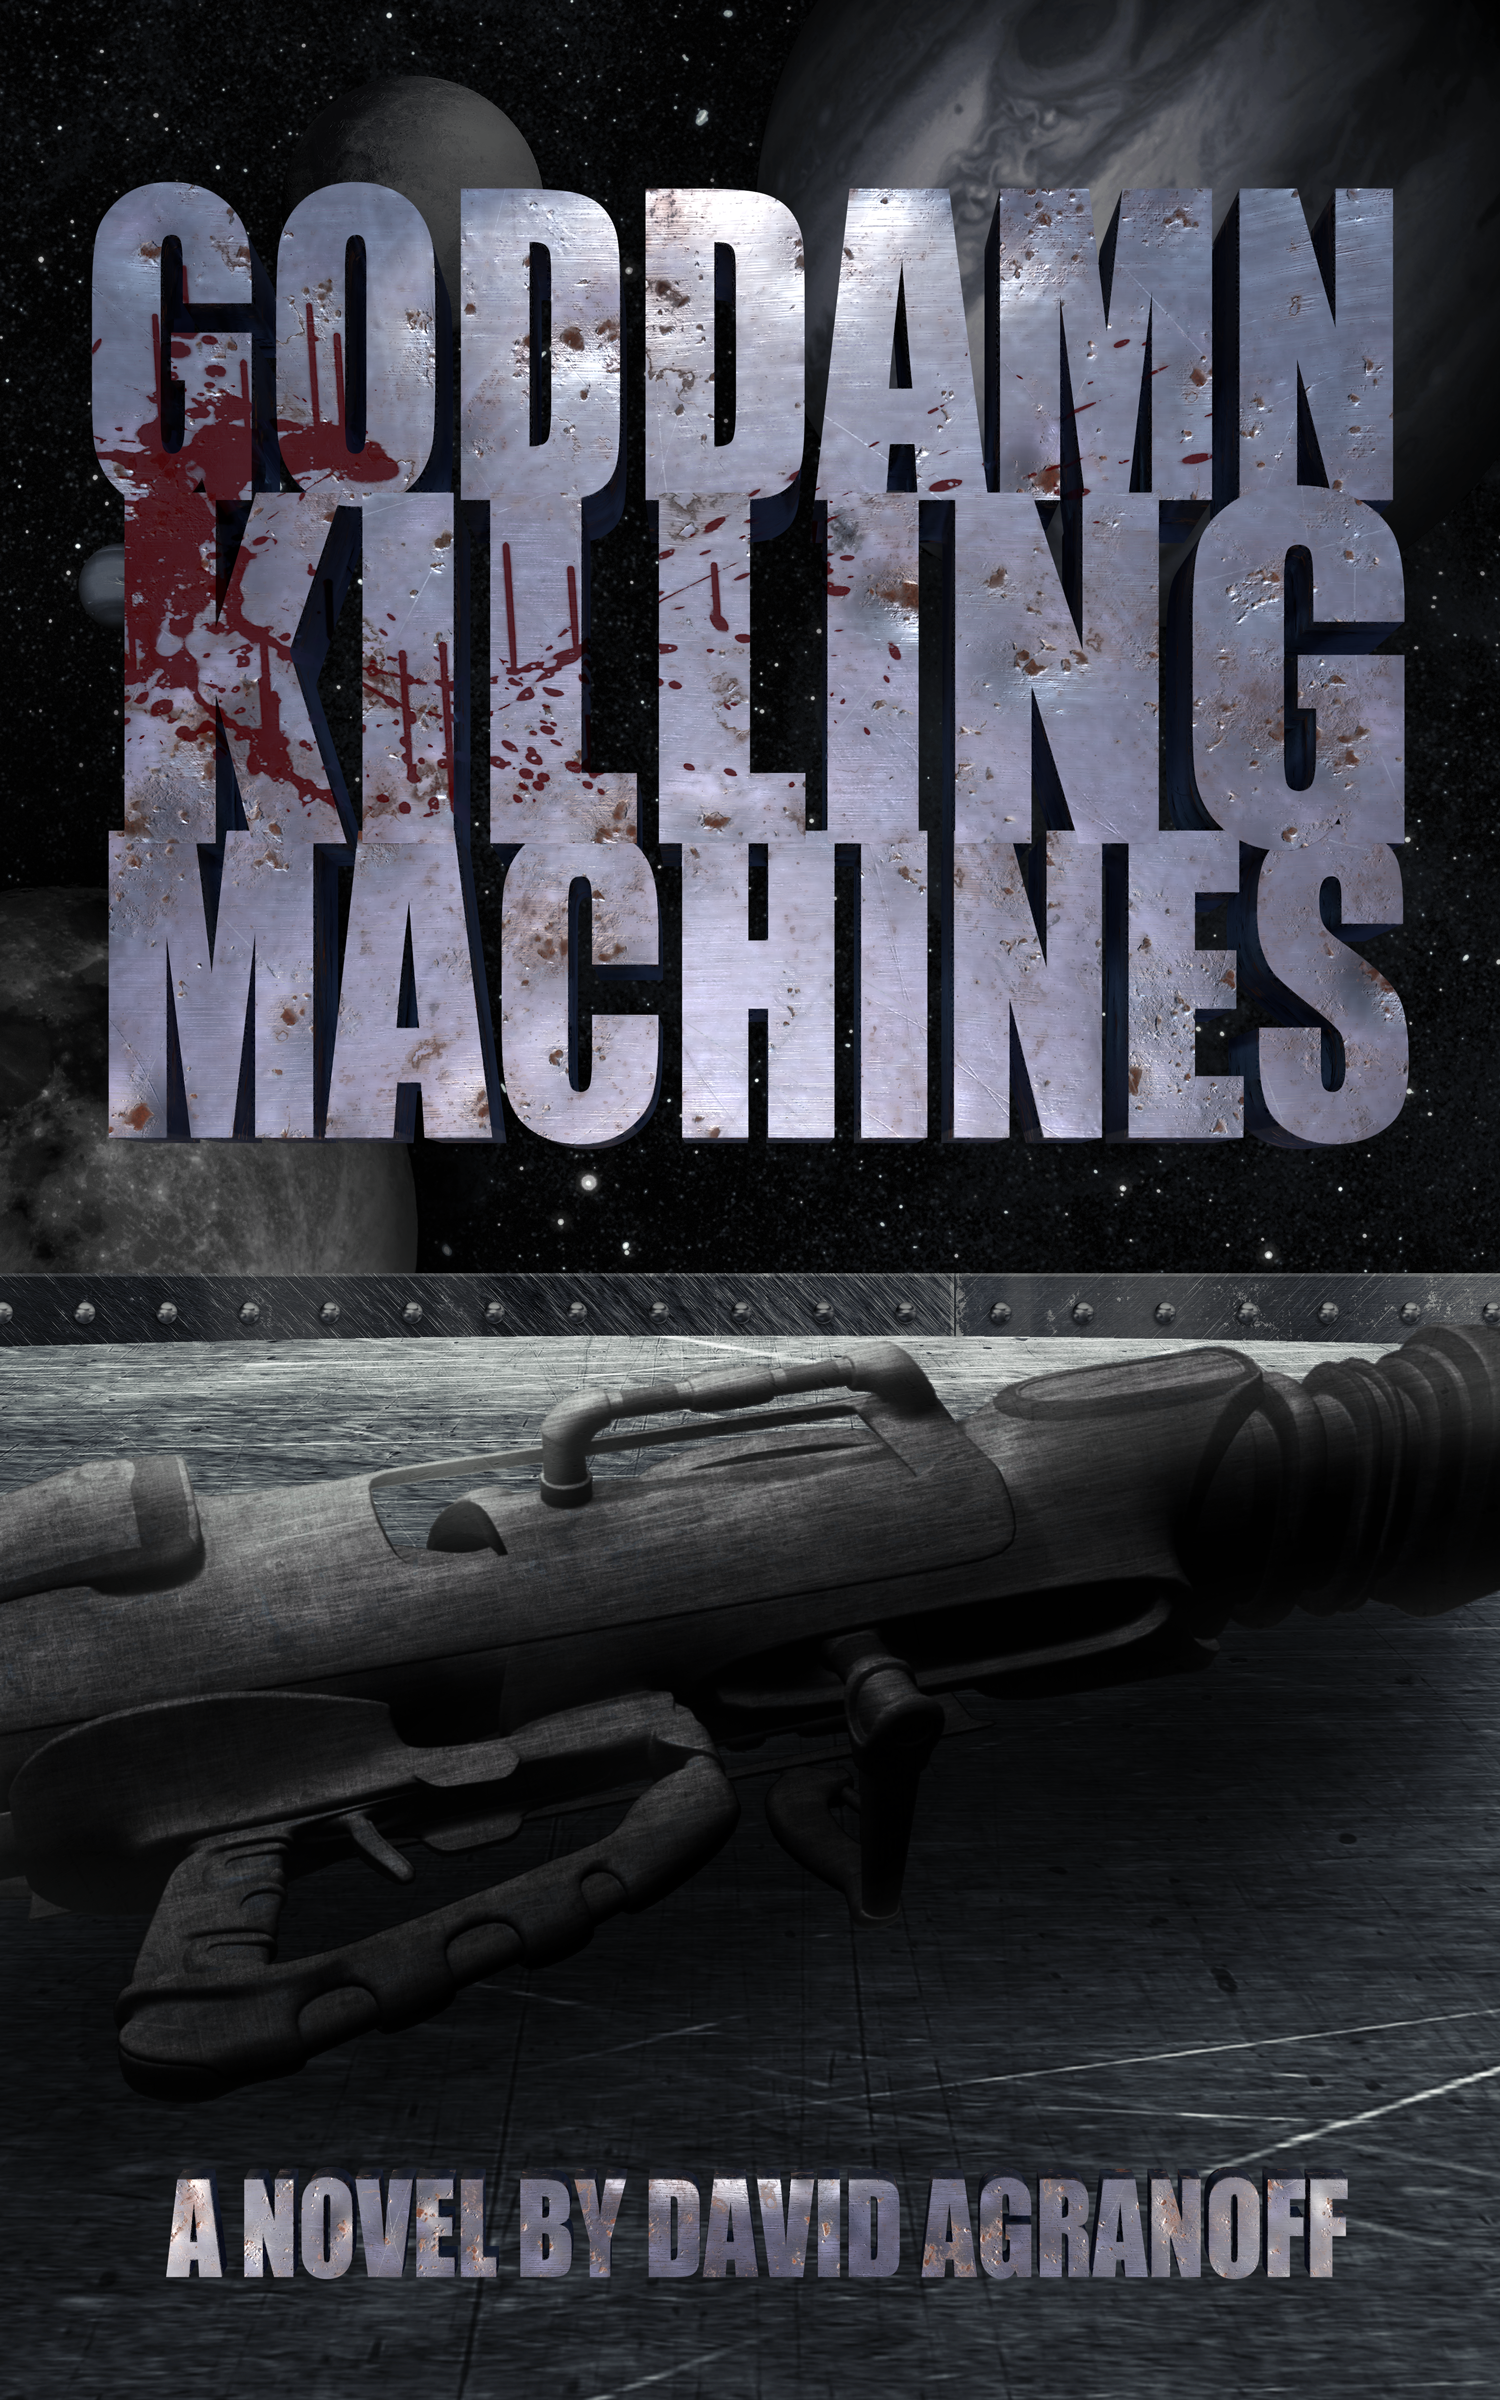 Mercenaries, War Criminals, Interstellar Travelers ... Killing Machines - Nick Jarvis thought he had escaped the life of violence. He and his squad of mercenaries; the notorious Goddamn Killing Machines, were wanted for war crimes on multiple planets.After building a new life in the ruins of Earth, he had happily settled into being a father and husband.But the U.N. needs the Killing Machines for one last dangerous mission.